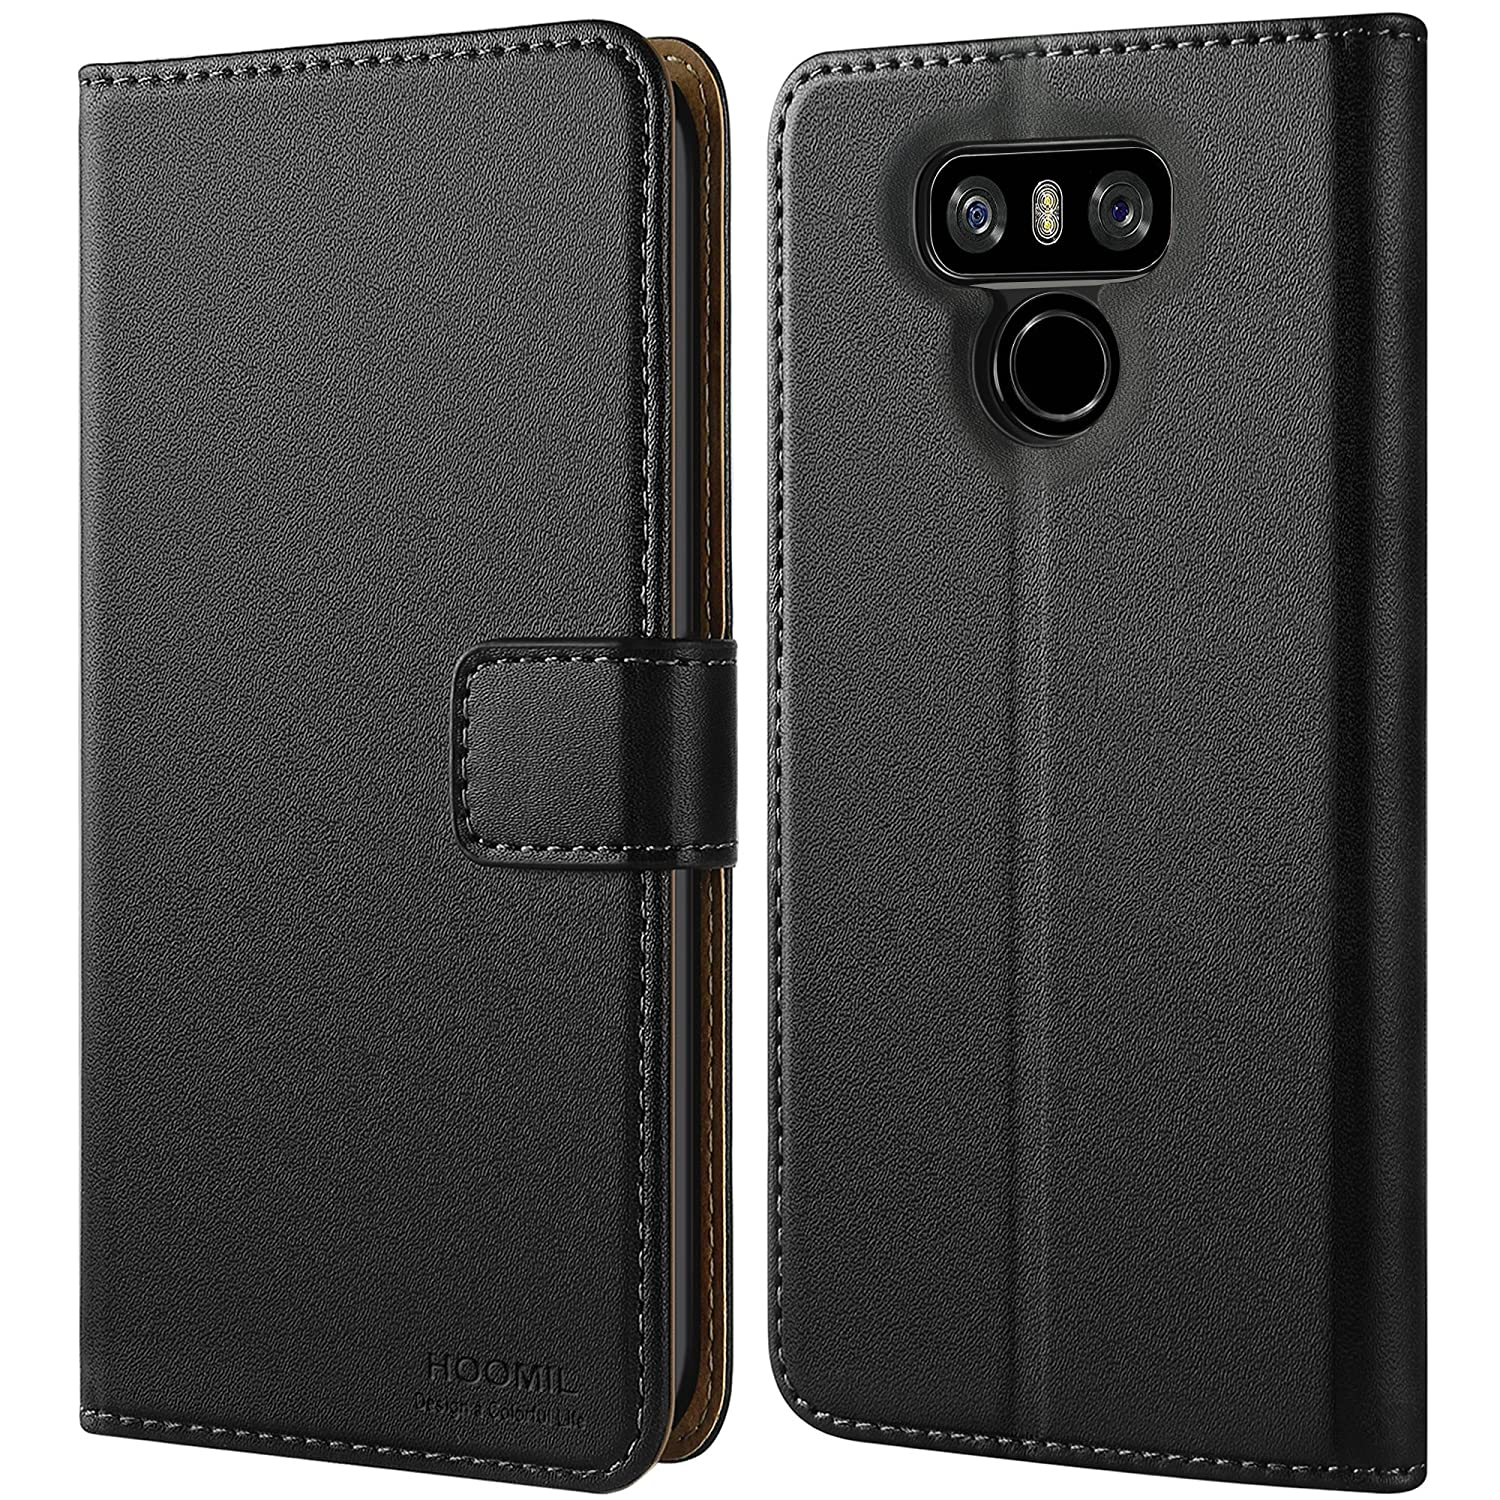 sale retailer ec503 fd3bb HOOMIL Case Compatible with LG G6 and LG G6 Plus, Premium Leather Flip  Wallet Phone Case for LG G6 / LG G6 Plus Cover (Black)